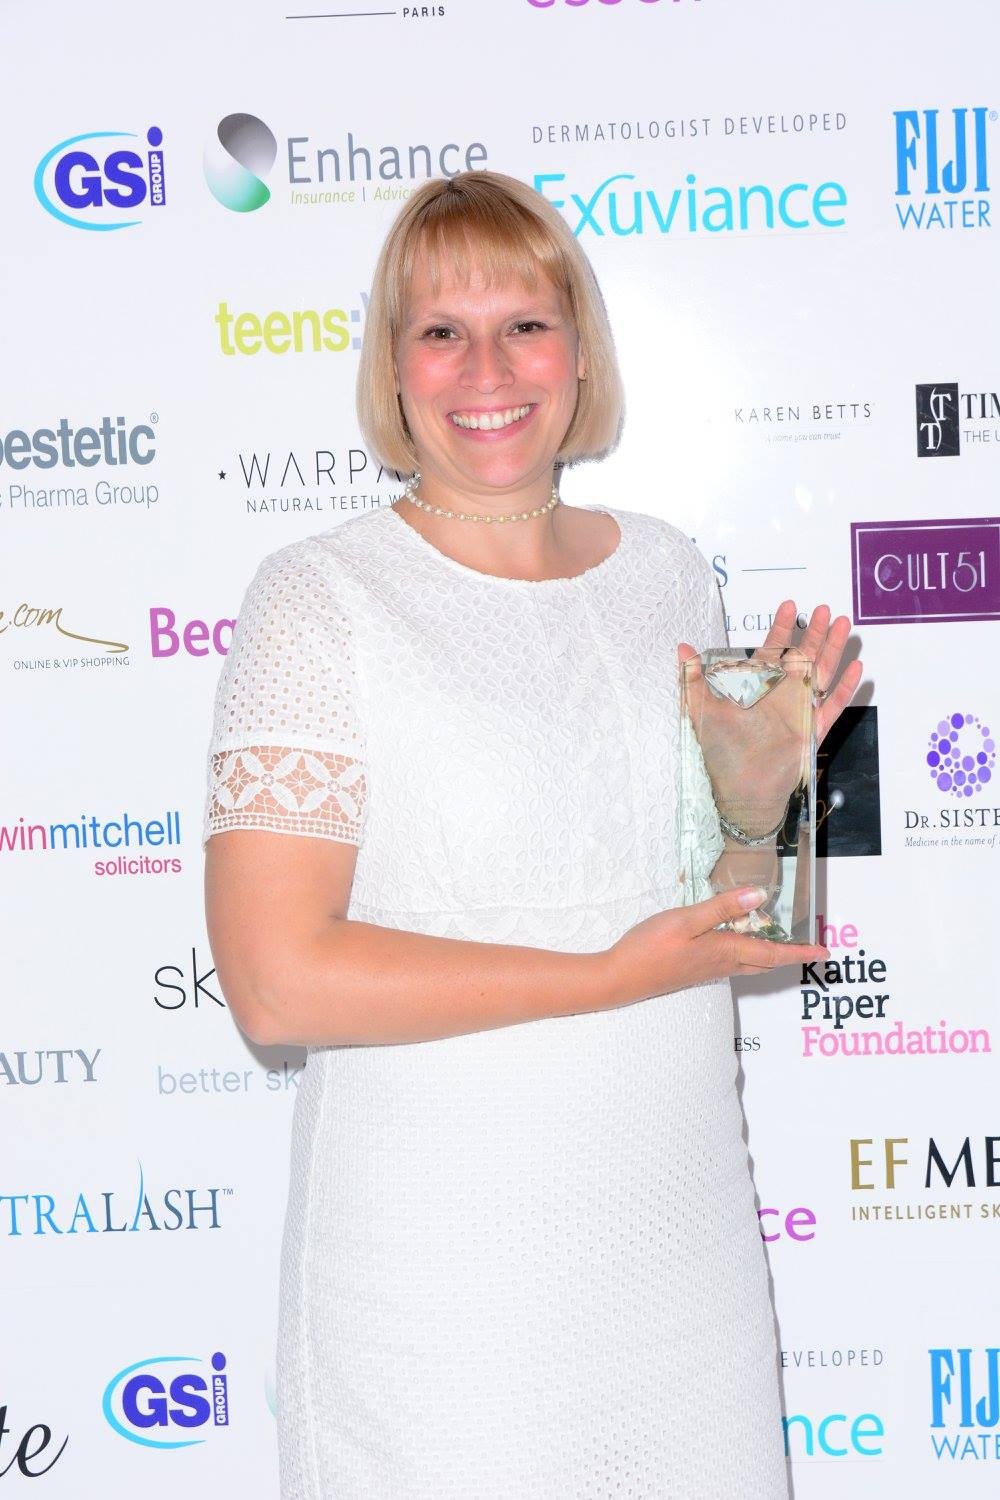 Safety in Beauty Diamond Award 2016 for Best Industry Media Outlet - Lorna Jackson, Editor